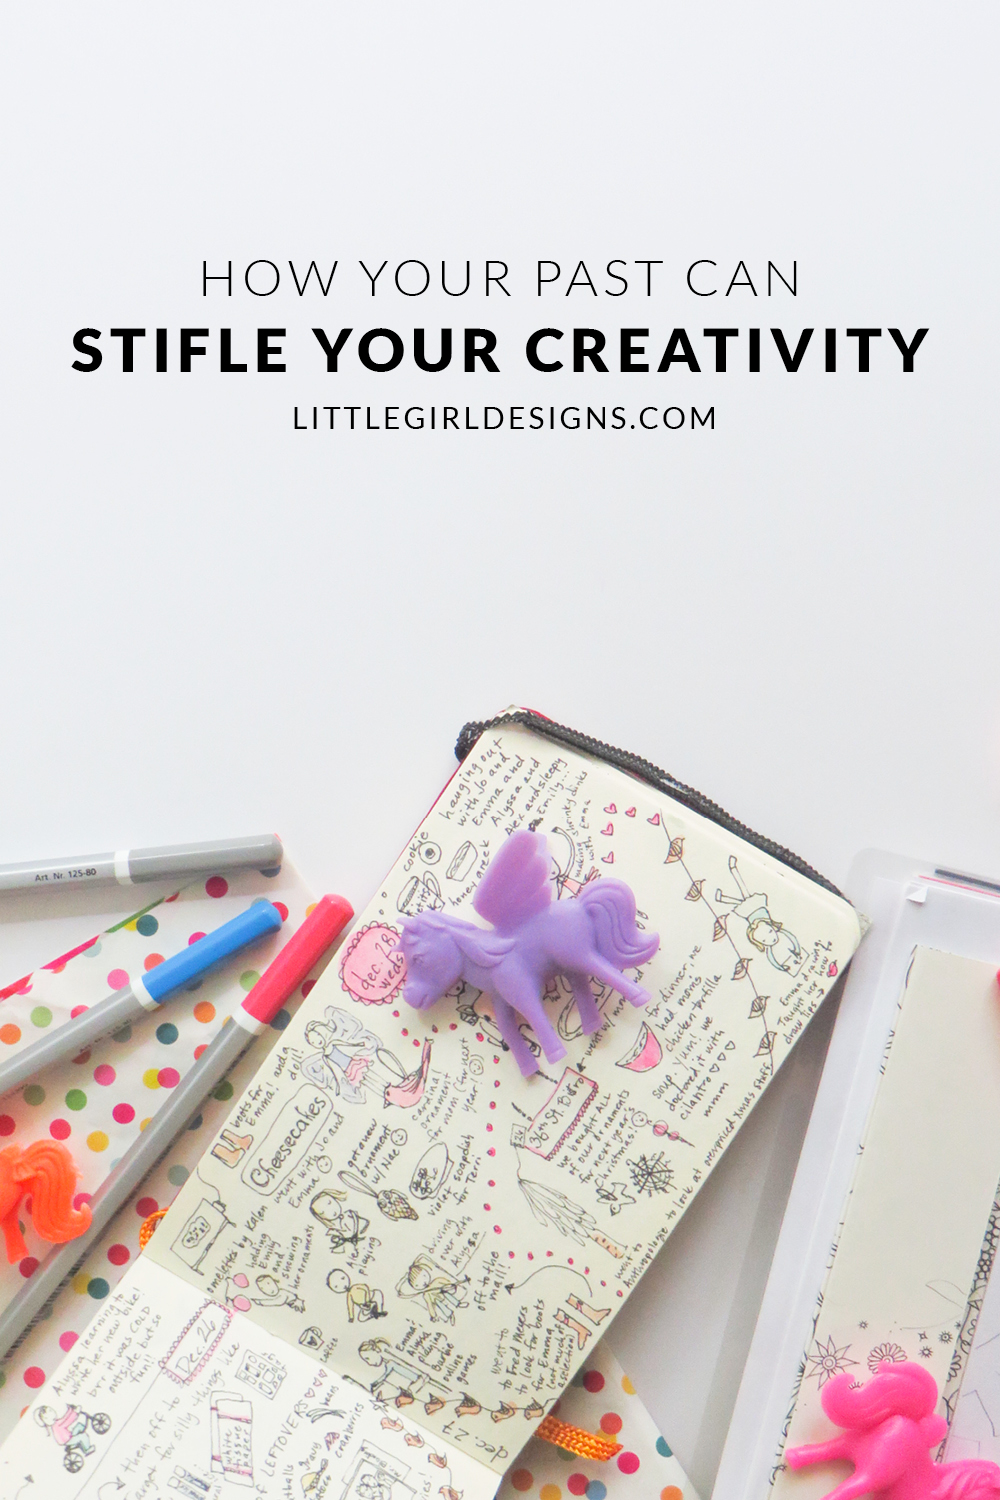 How Your Past Can Stifle Your Creativity - Some of the thought processes and habits we have actually keep us from being creative. I found that when my favorite way to create didn't work anymore, I was so frustrated. Judging from the emails I receive from readers, I'm not alone! Hopefully, these thoughts will encourage you to reassess your creative life and enjoy it again. :) @ littlegirldesigns.com